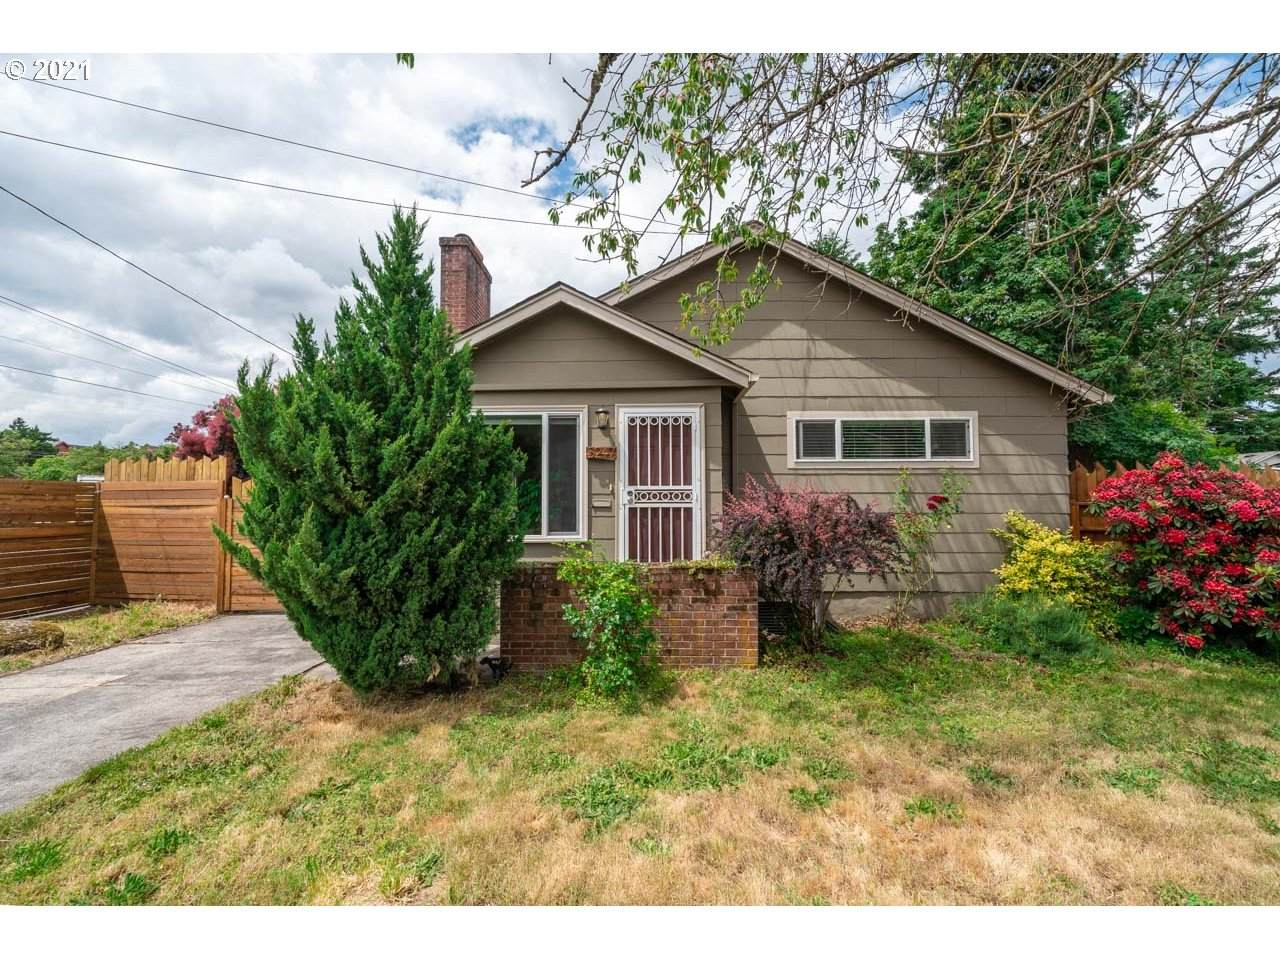 5247 79TH Ave - Photo 1